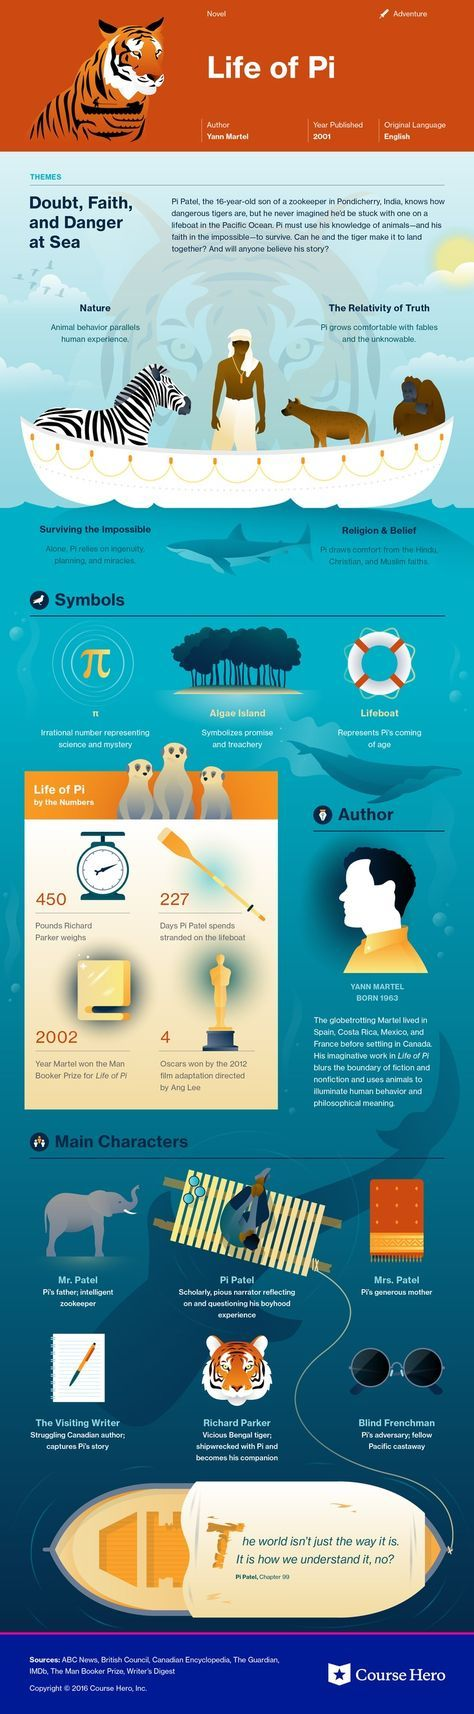 This @CourseHero infographic on Life of Pi is both visually stunning and informative!